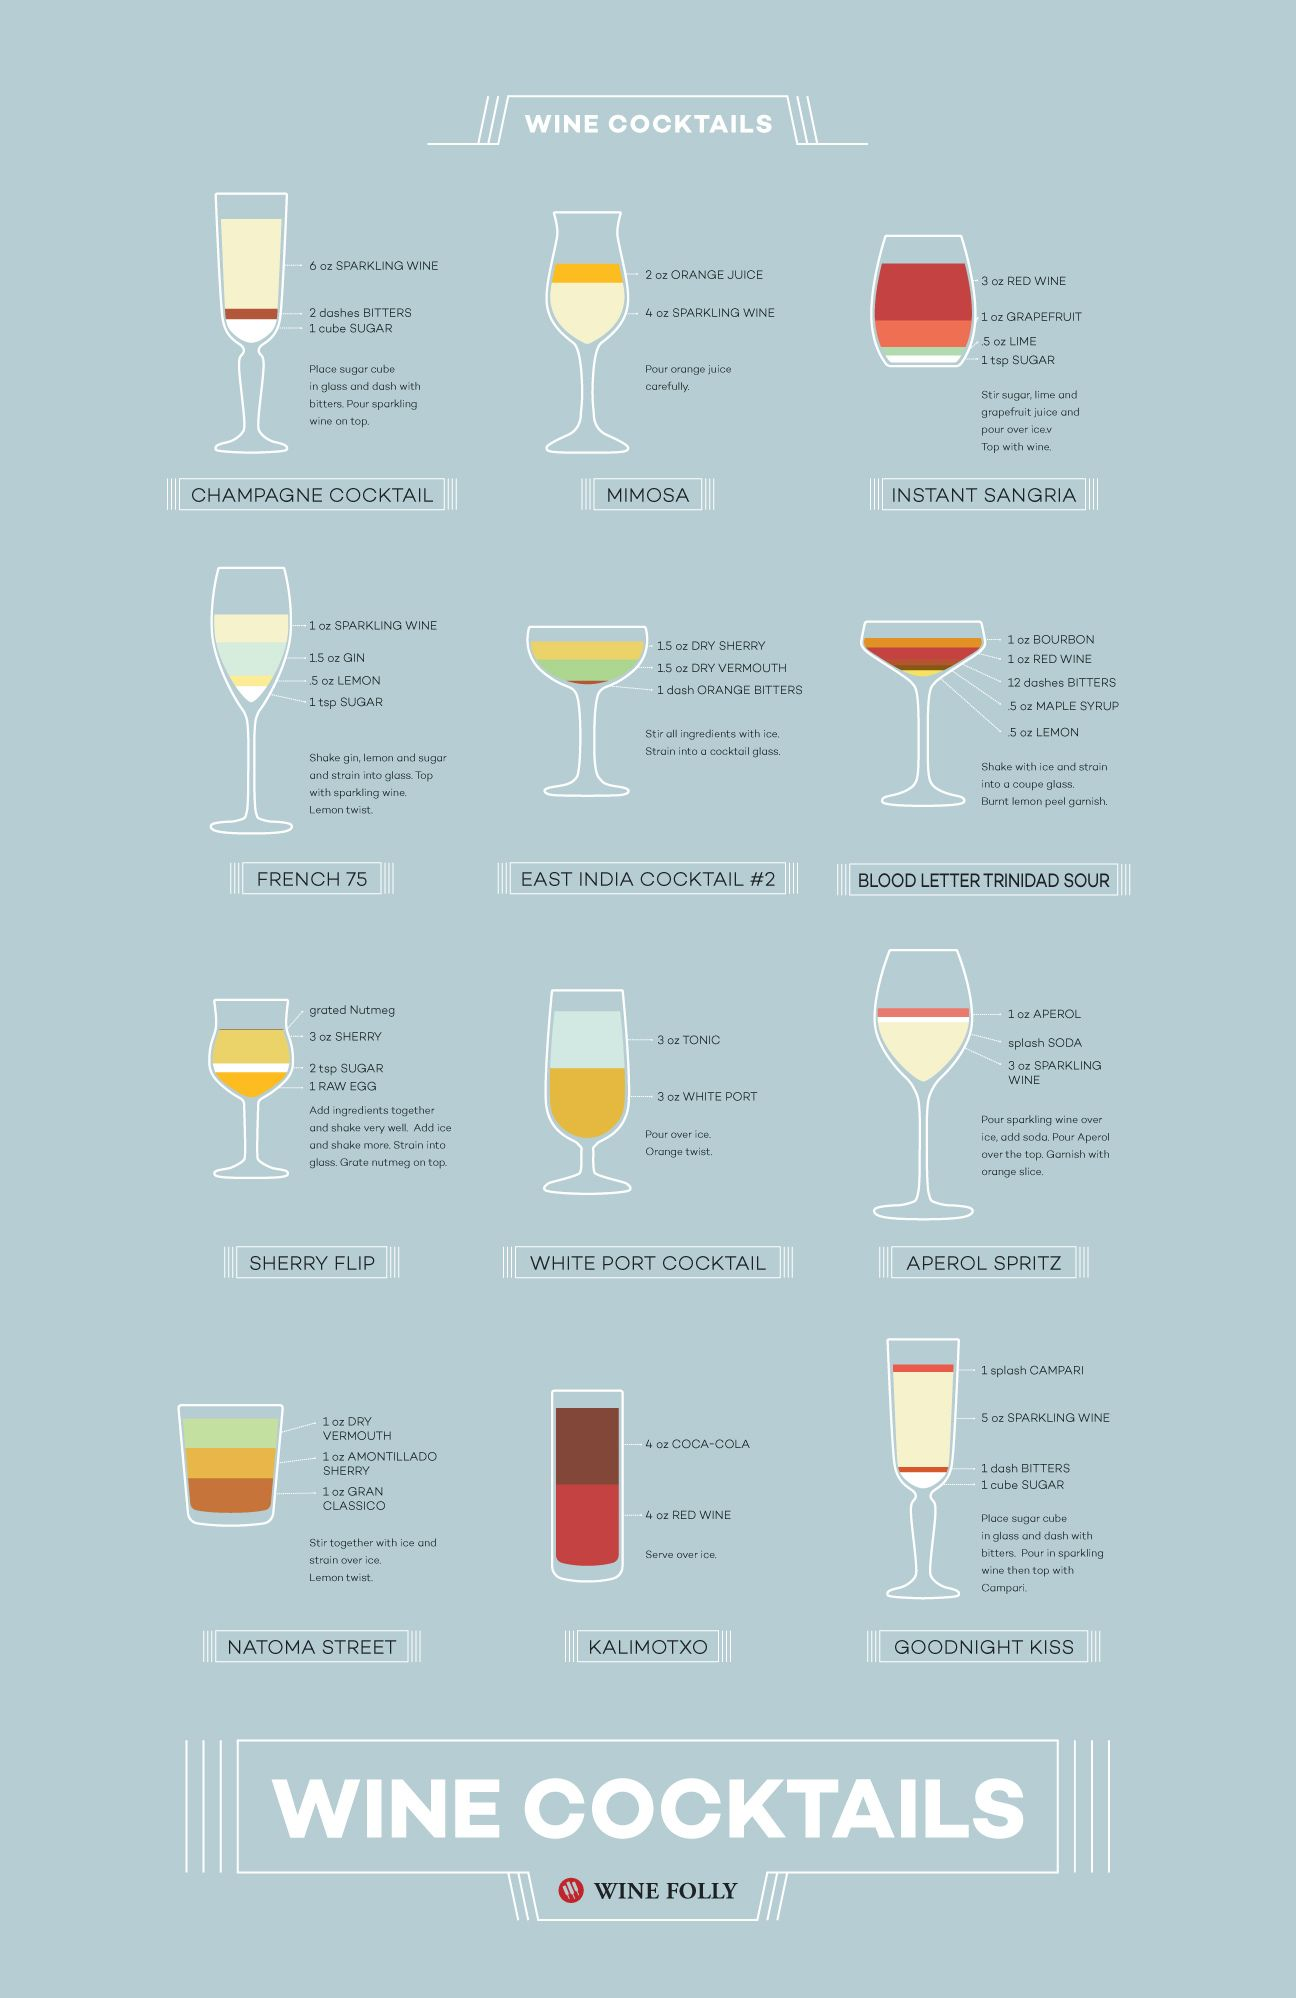 wine-cocktails-infographic-wine-folly.jpg 1296×1998 pixels